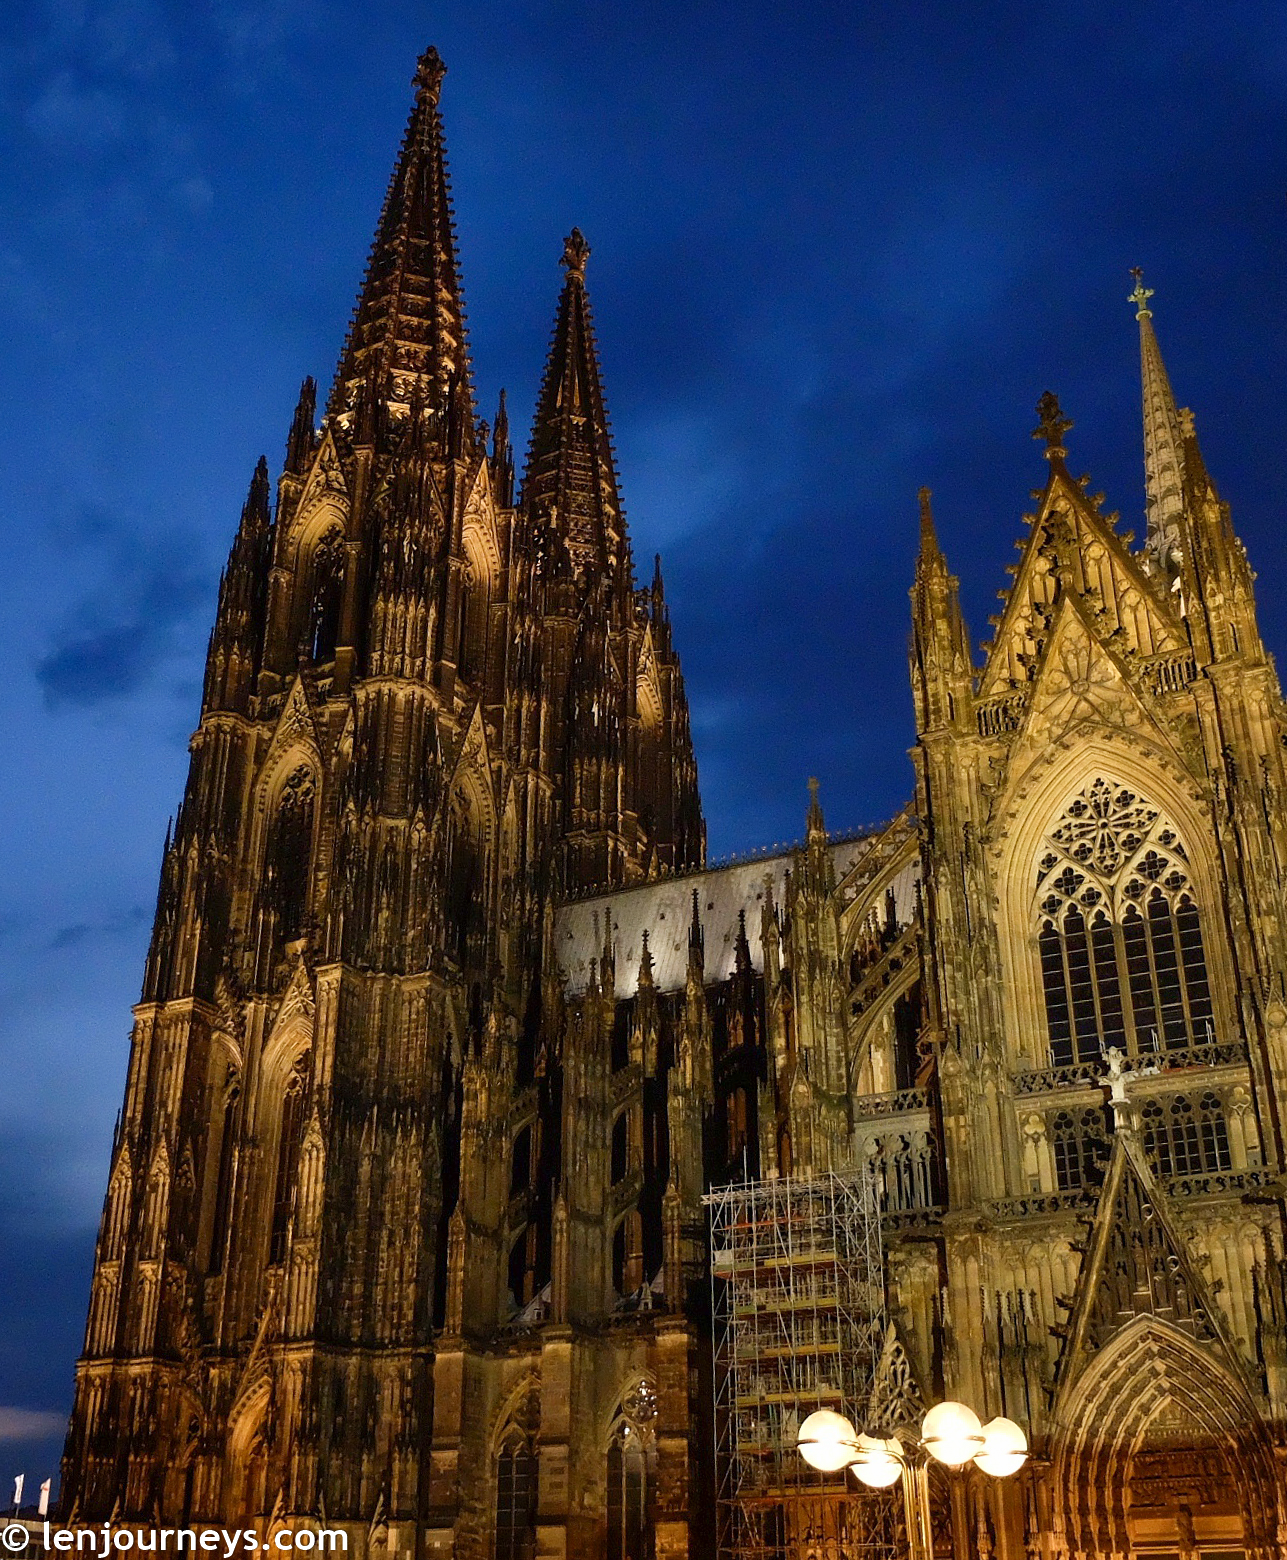 The grand spires of Cologne Cathedral